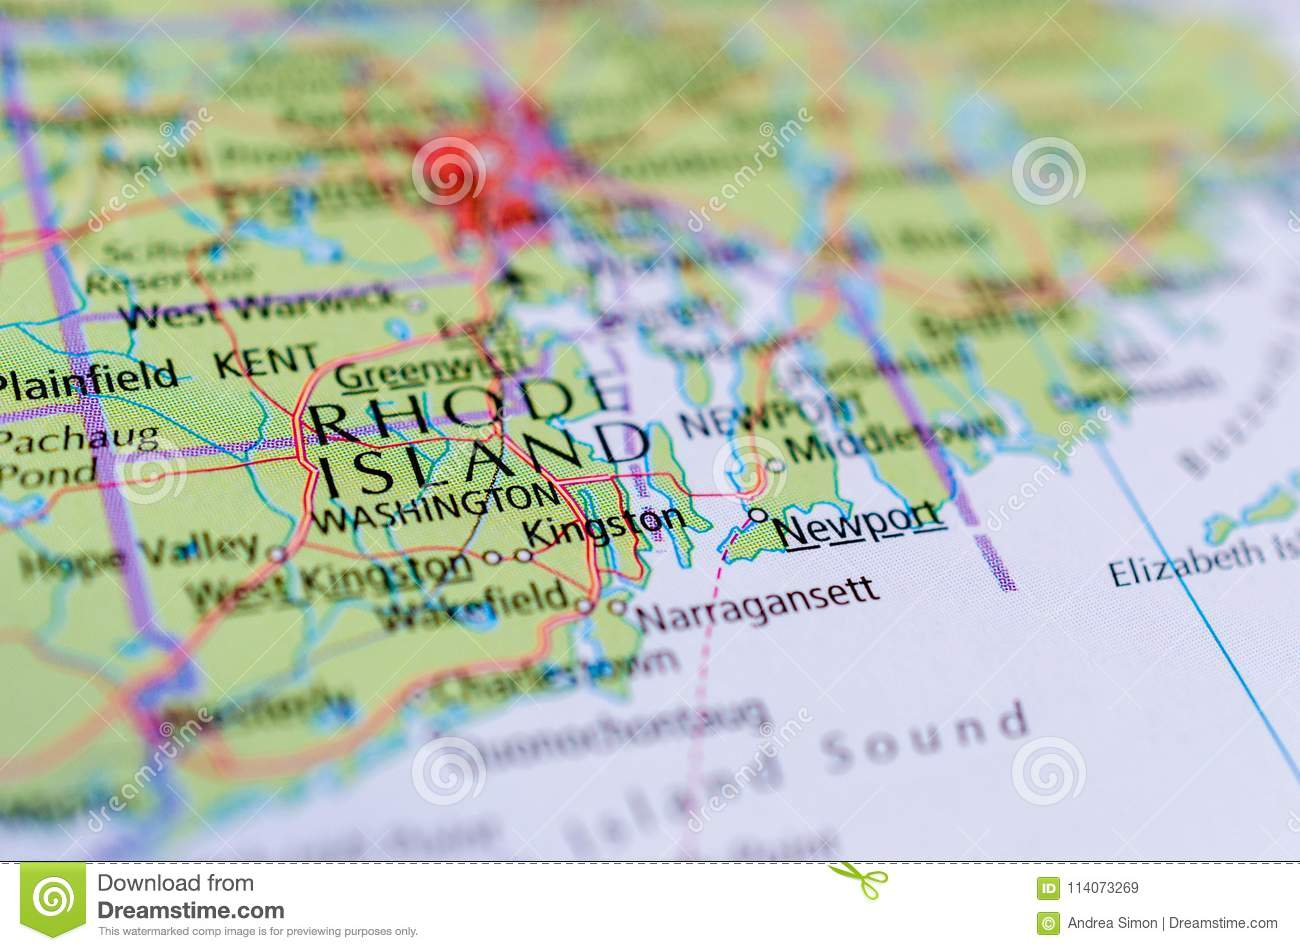 Rhode Island on map stock image. Image of cities, america - 114073269